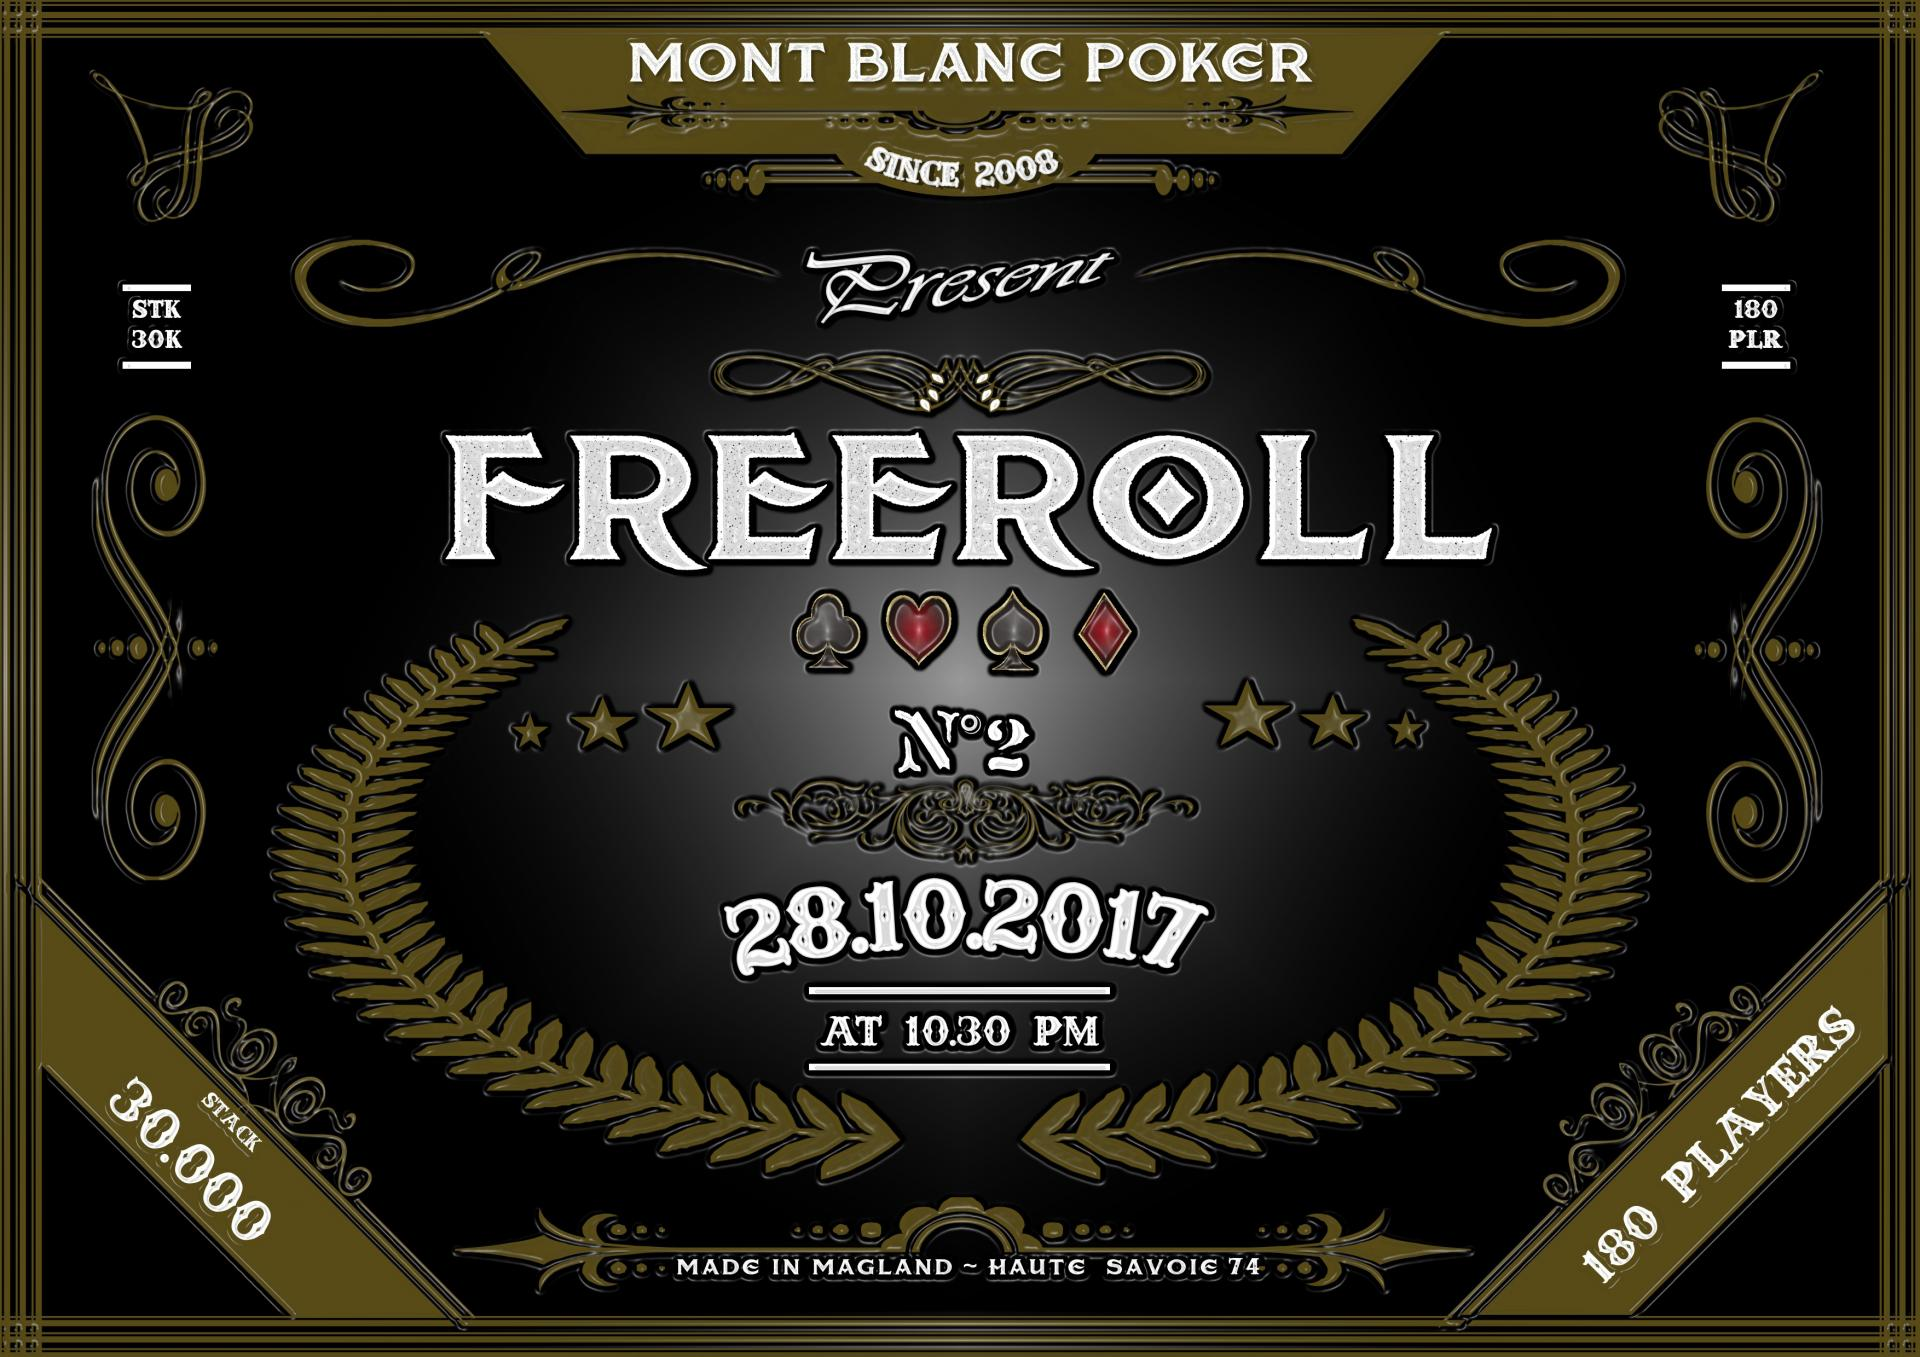 Freeroll 2 mbp 2017